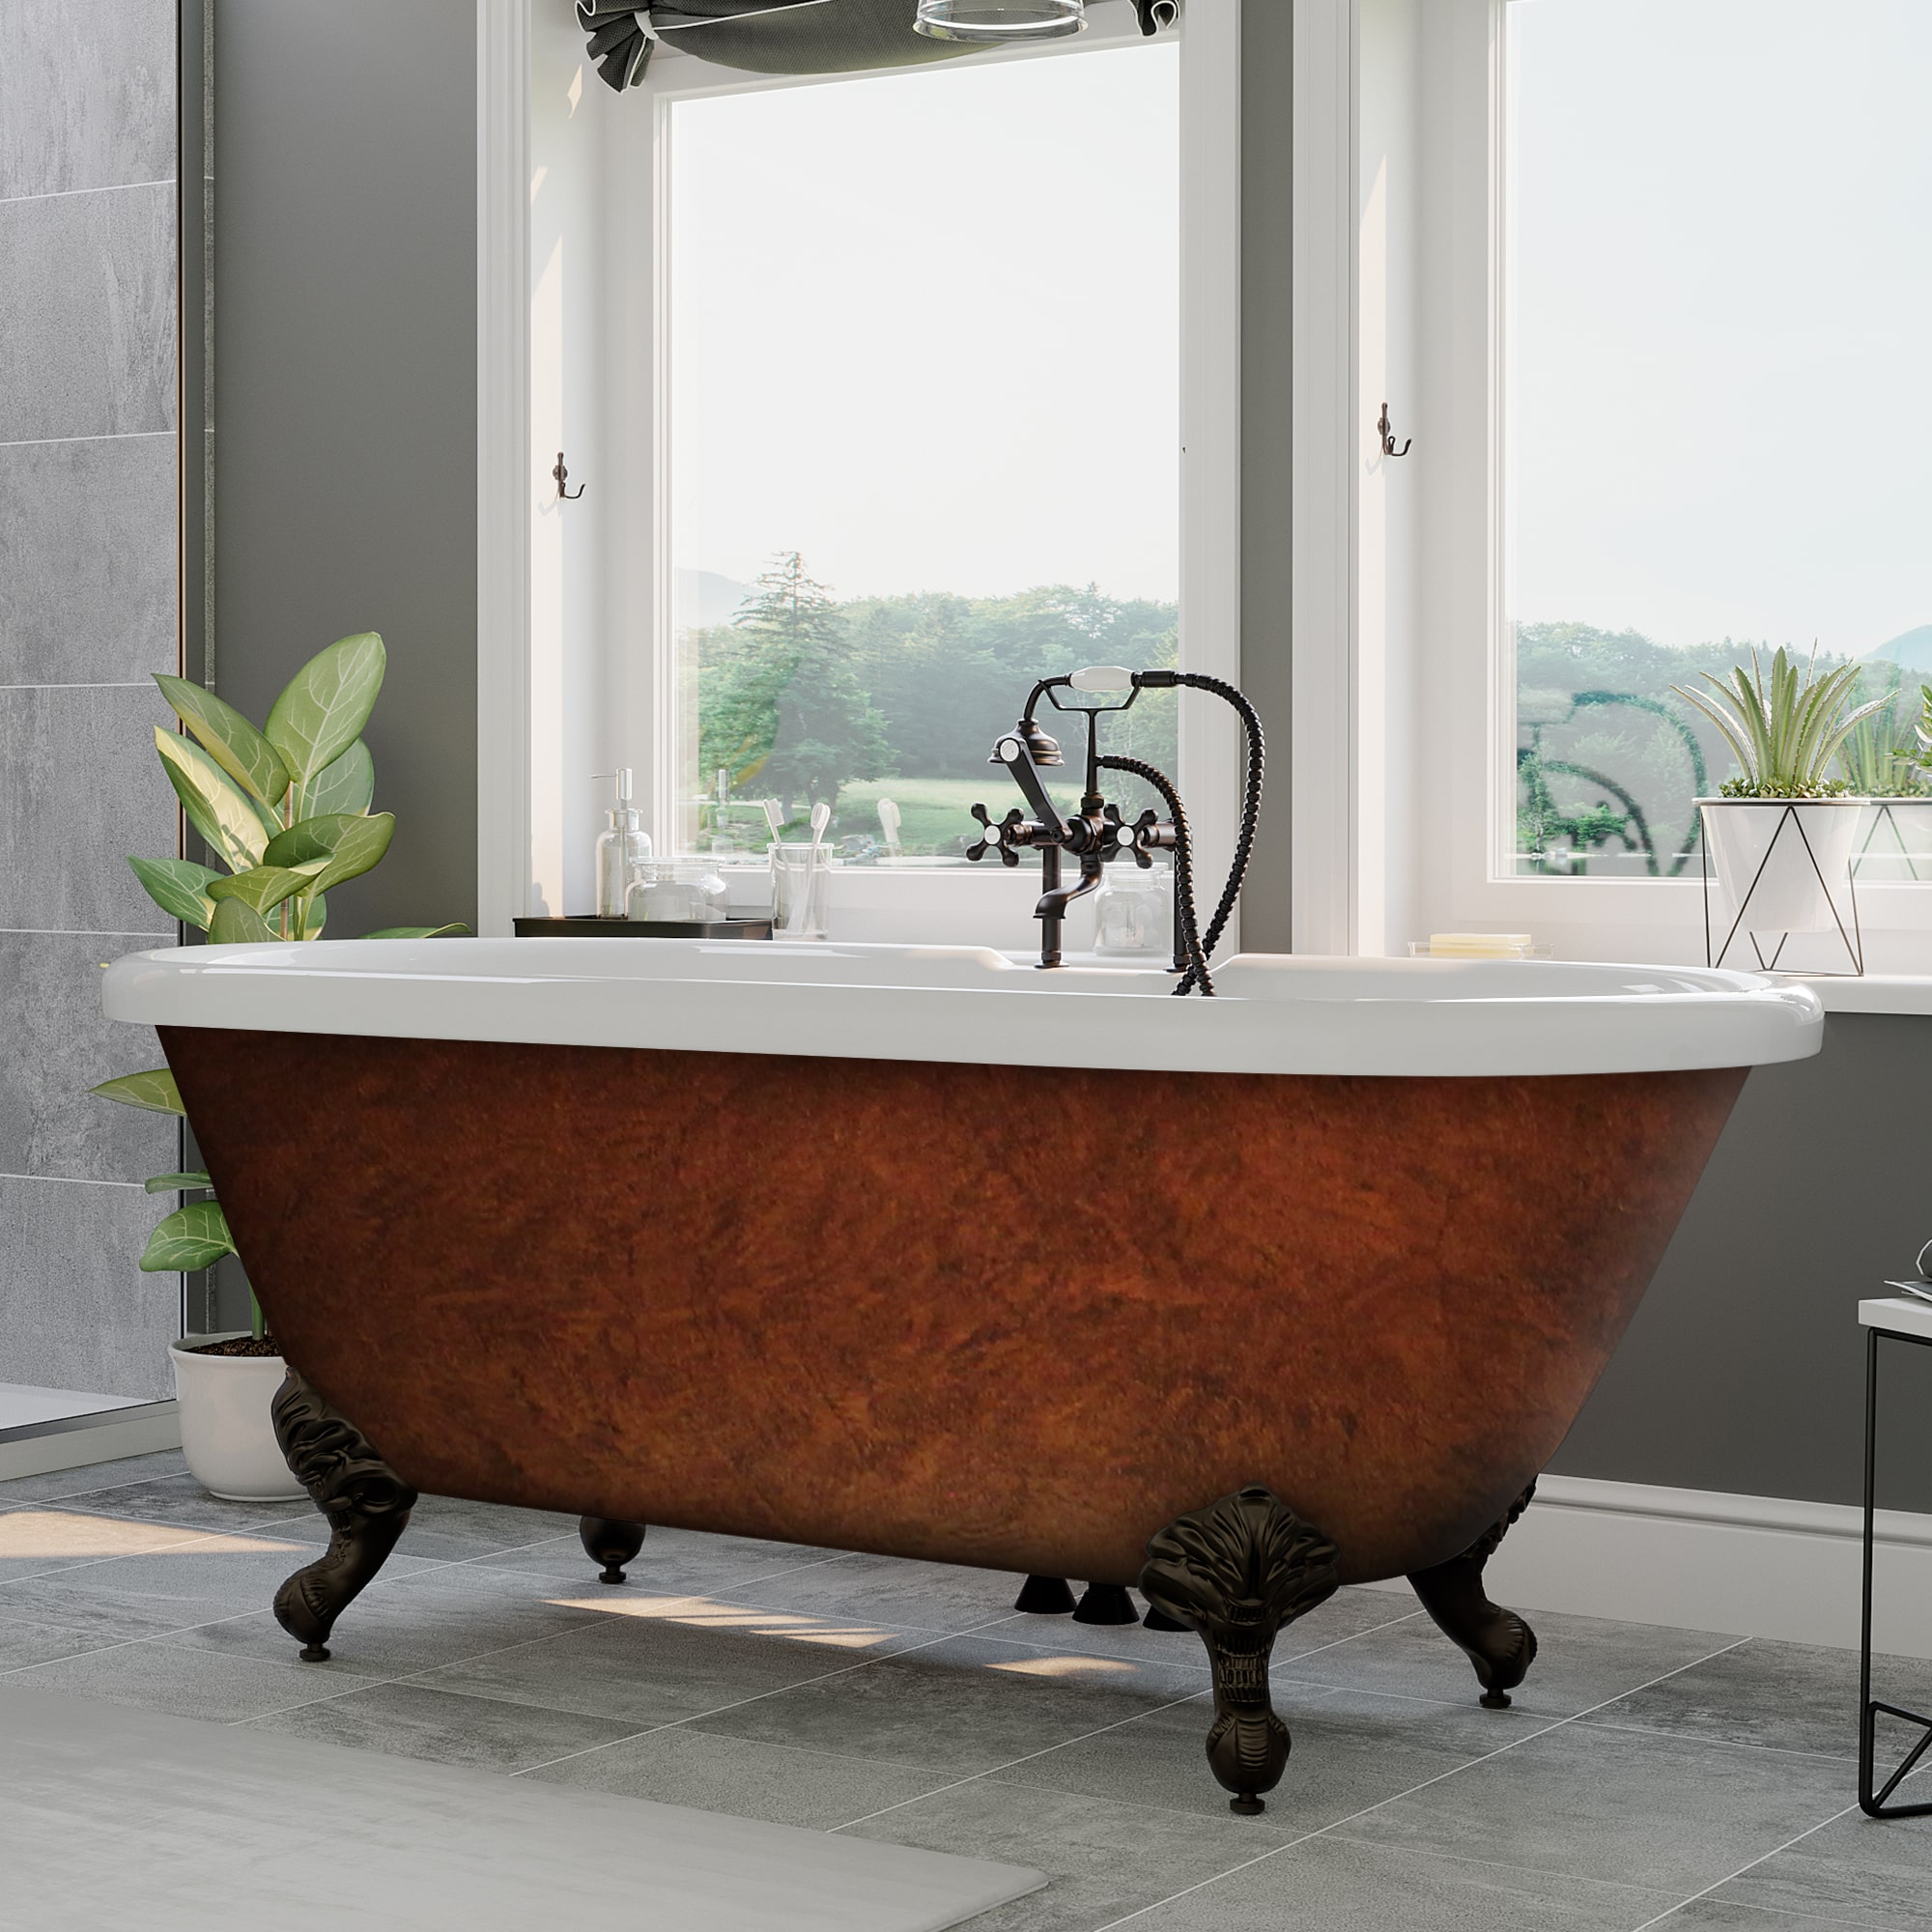 acrylic, copper bronze, double ended tub,